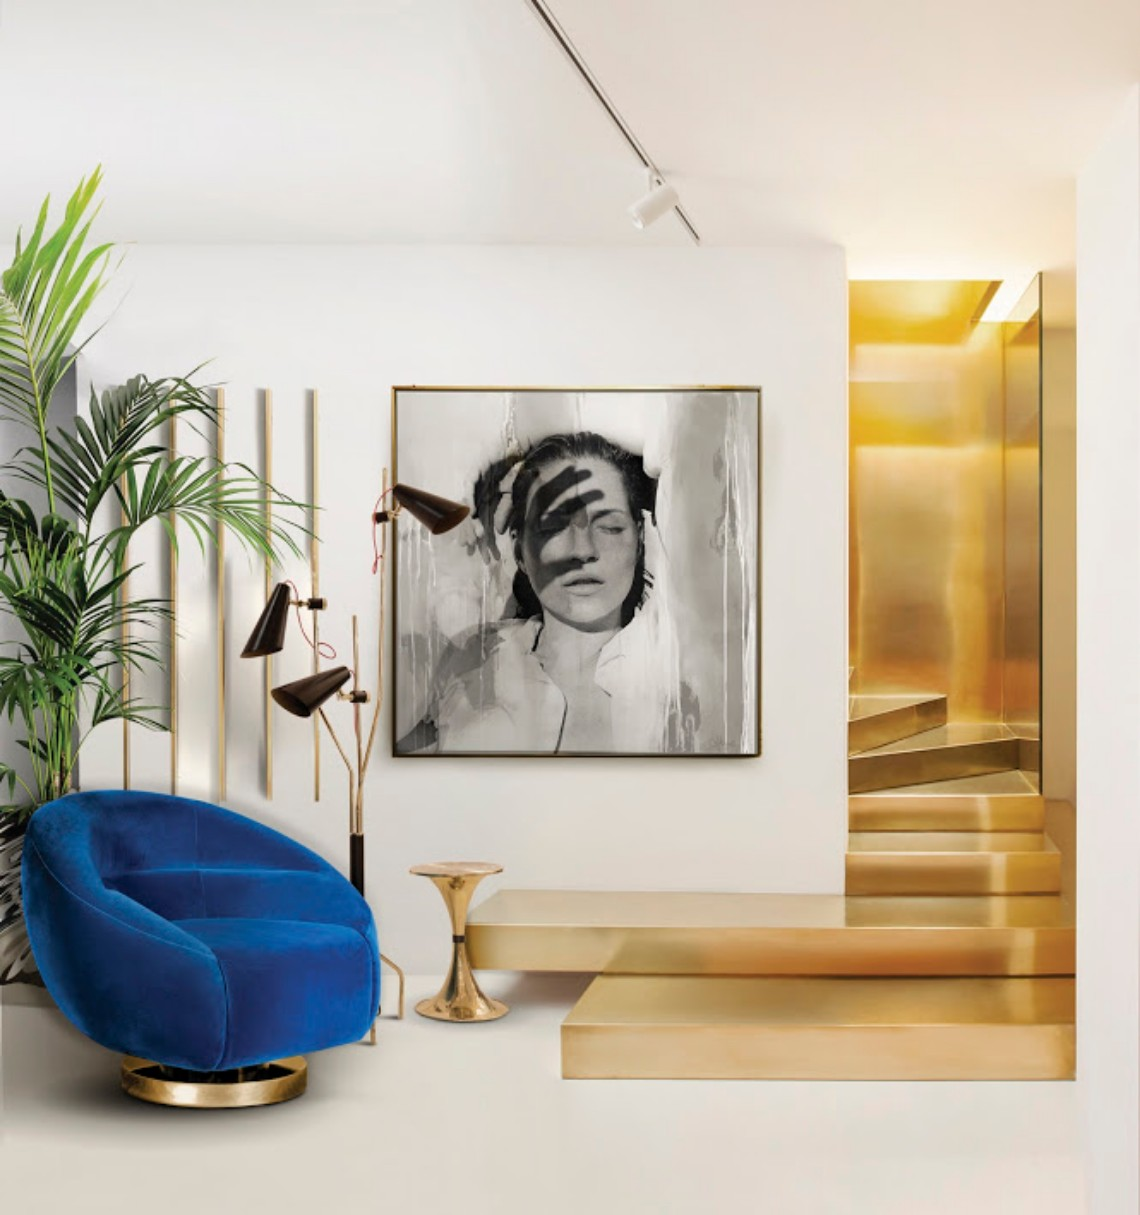 Contemporary Lighting Ideas To Start Planning Your Summer Decor